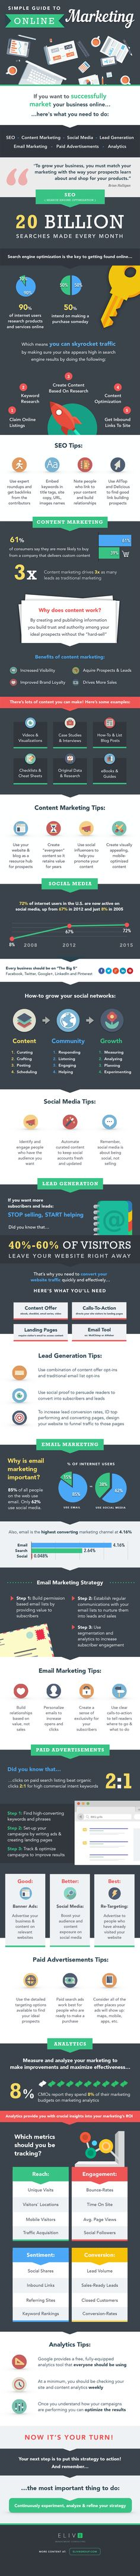 Simple Guide to Online Marketing (Infographic)